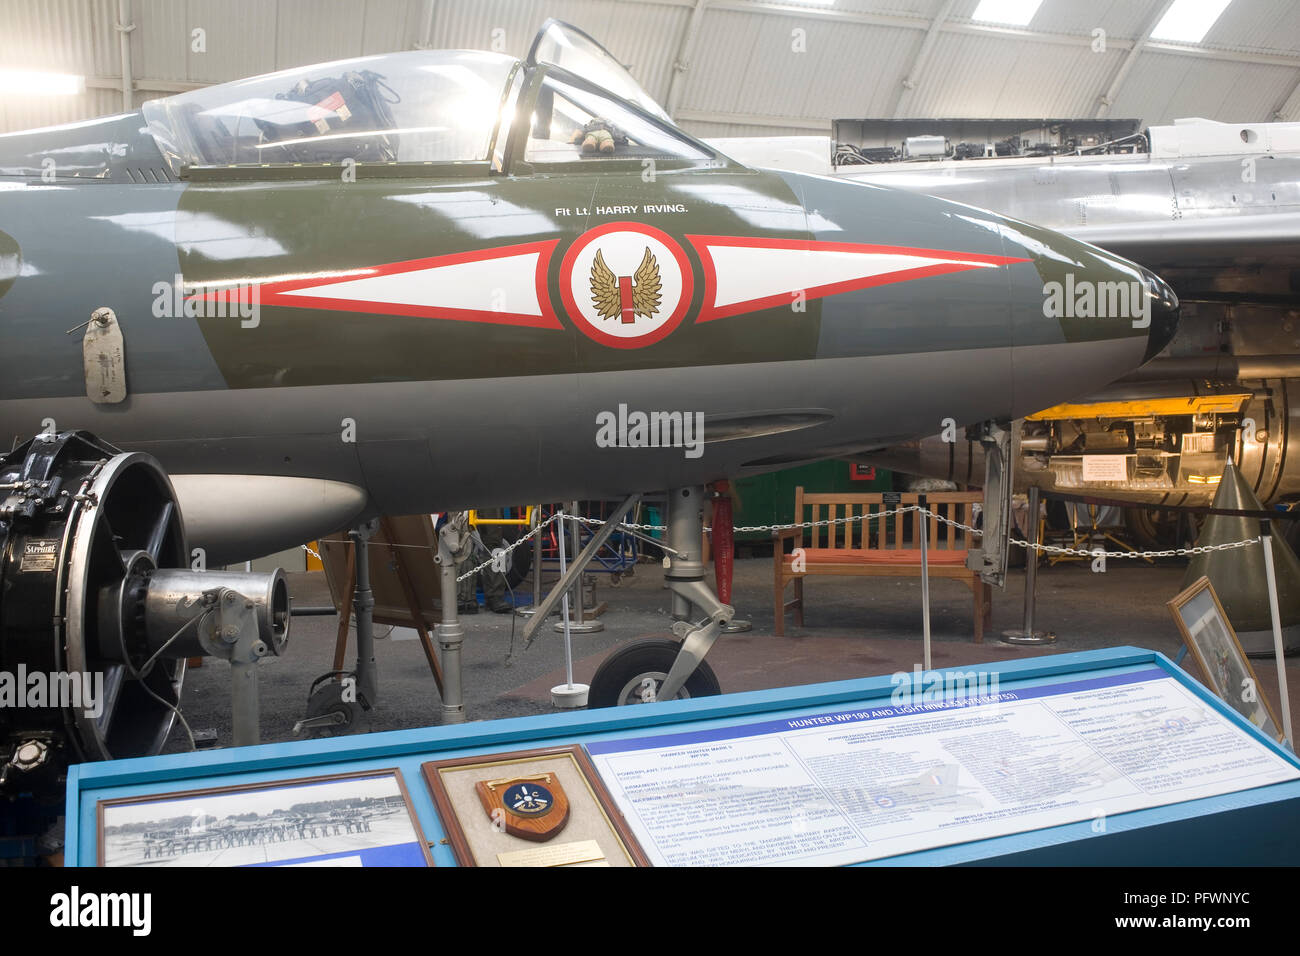 Cockpit and nose of Hawker Hunter Mk 5 aircraft in Meryl Hansed Memorial Hall at Tangmere militray aviation museum - Stock Image